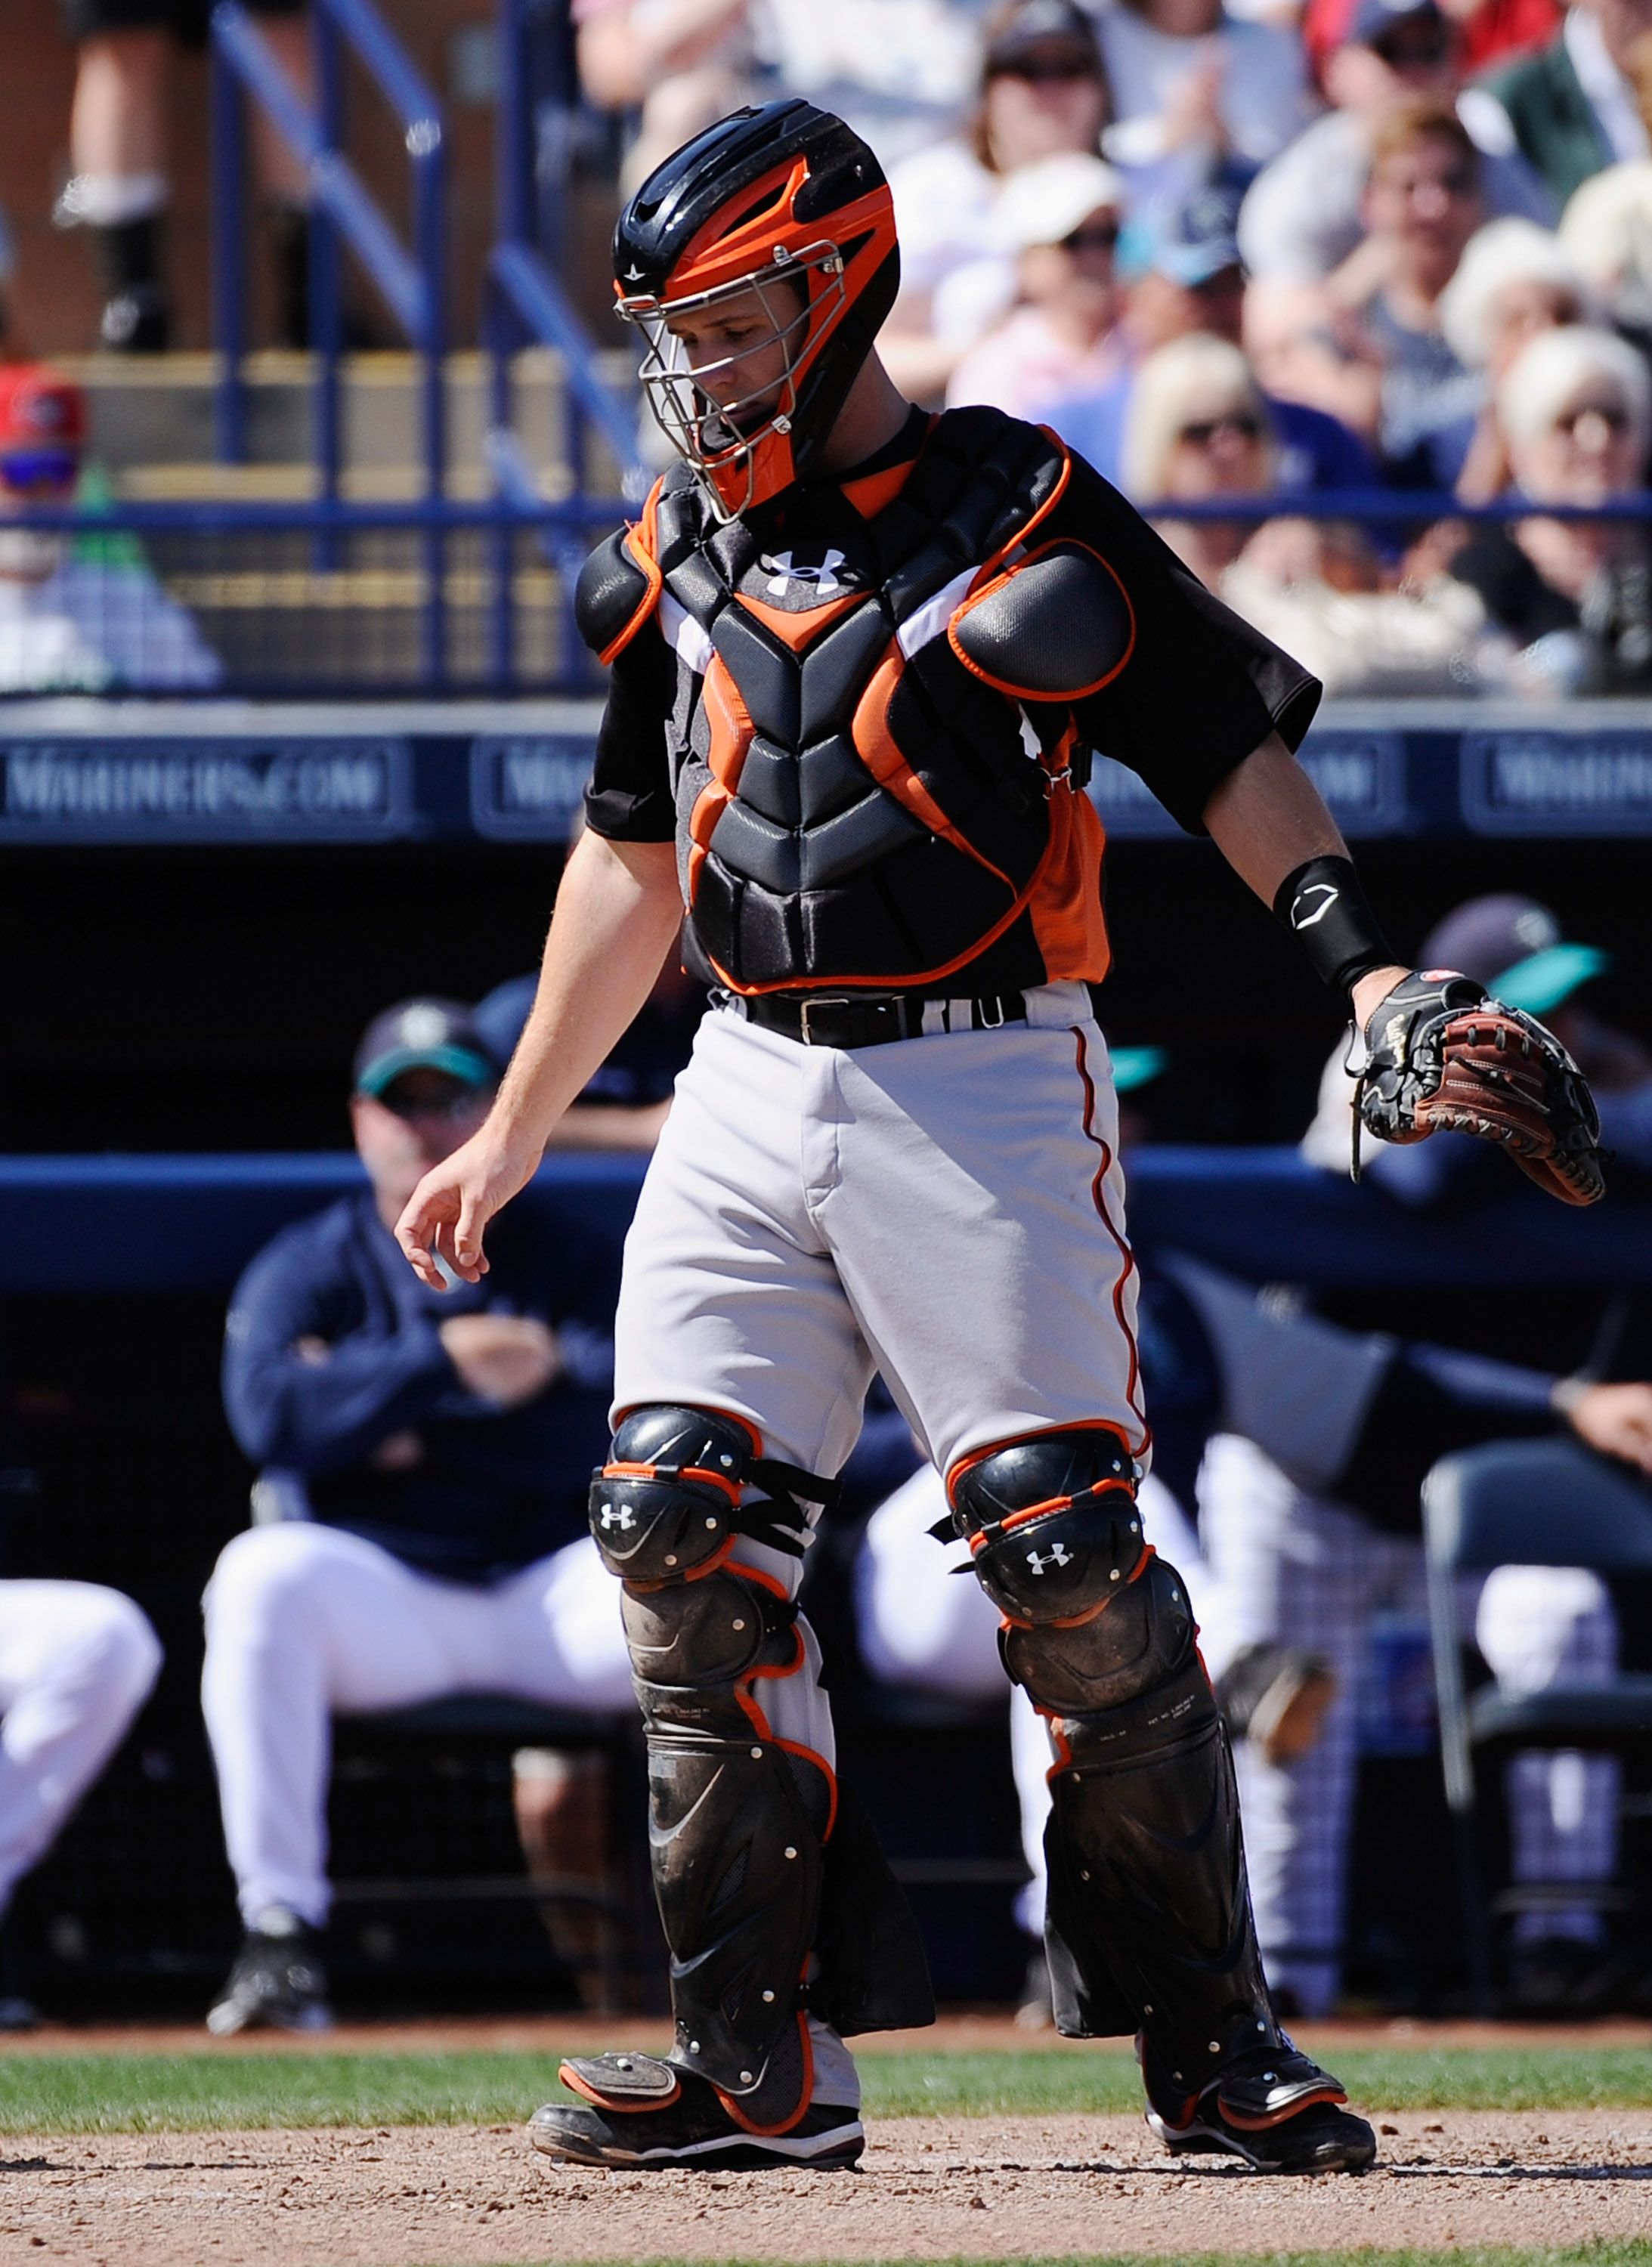 PEORIA, AZ - MARCH 08:  Buster Posey #28 catcher of the San Francisco Giants against the Seattle Mariners during the spring training baseball game against at Peoria Stadium on March 8, 2011 in Peoria, Arizona.  (Photo by Kevork Djansezian/Getty Images)